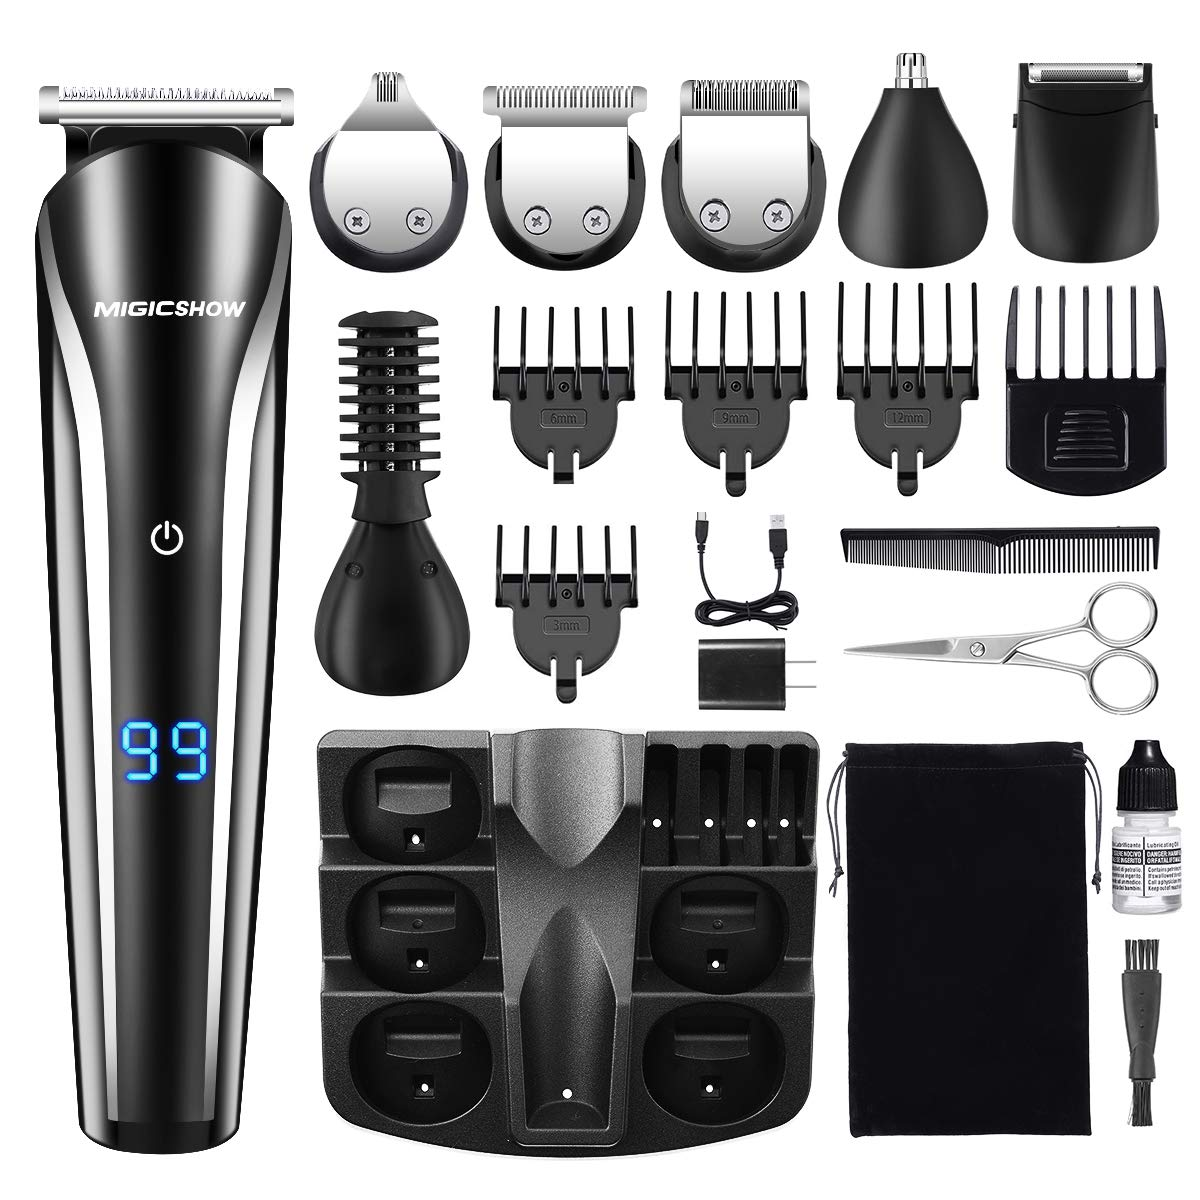 MIGICSHOW Cordless Waterproof Multi functional Rechargeable